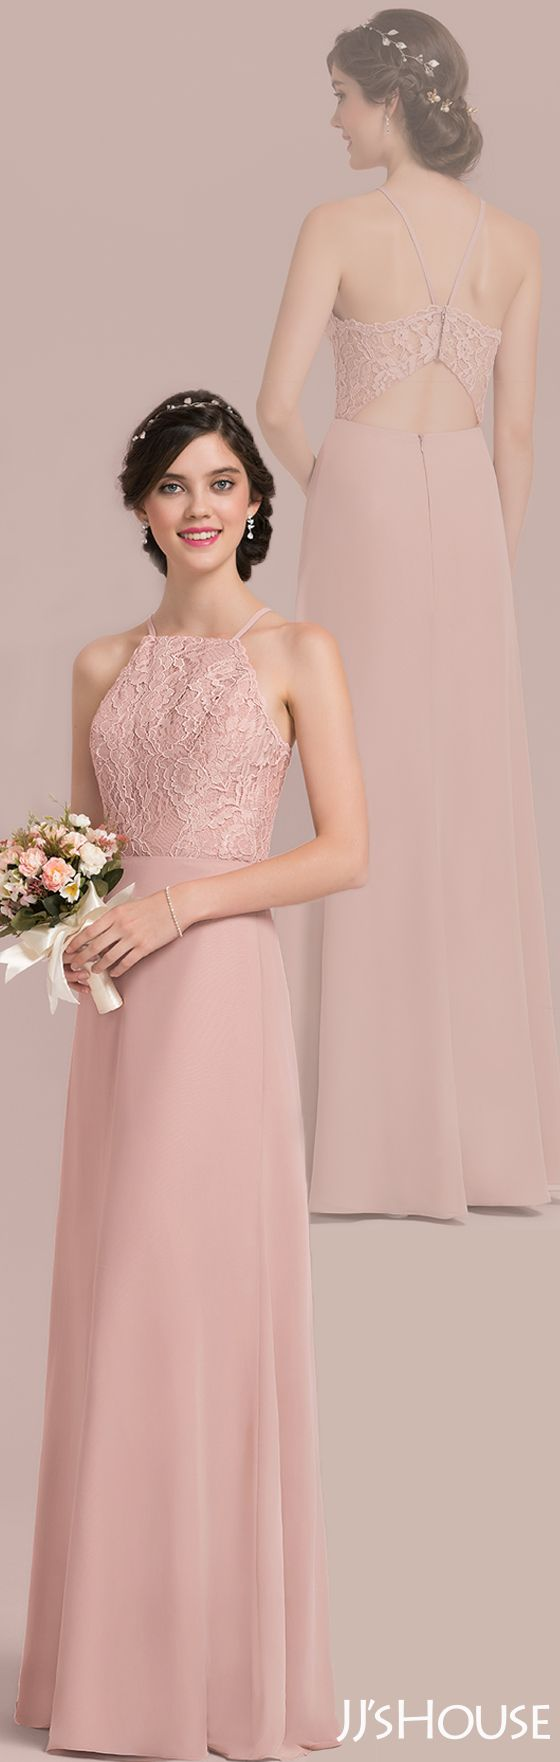 This chiffon lace bridesmaid dress is too good to be true! #JJsHouse ...